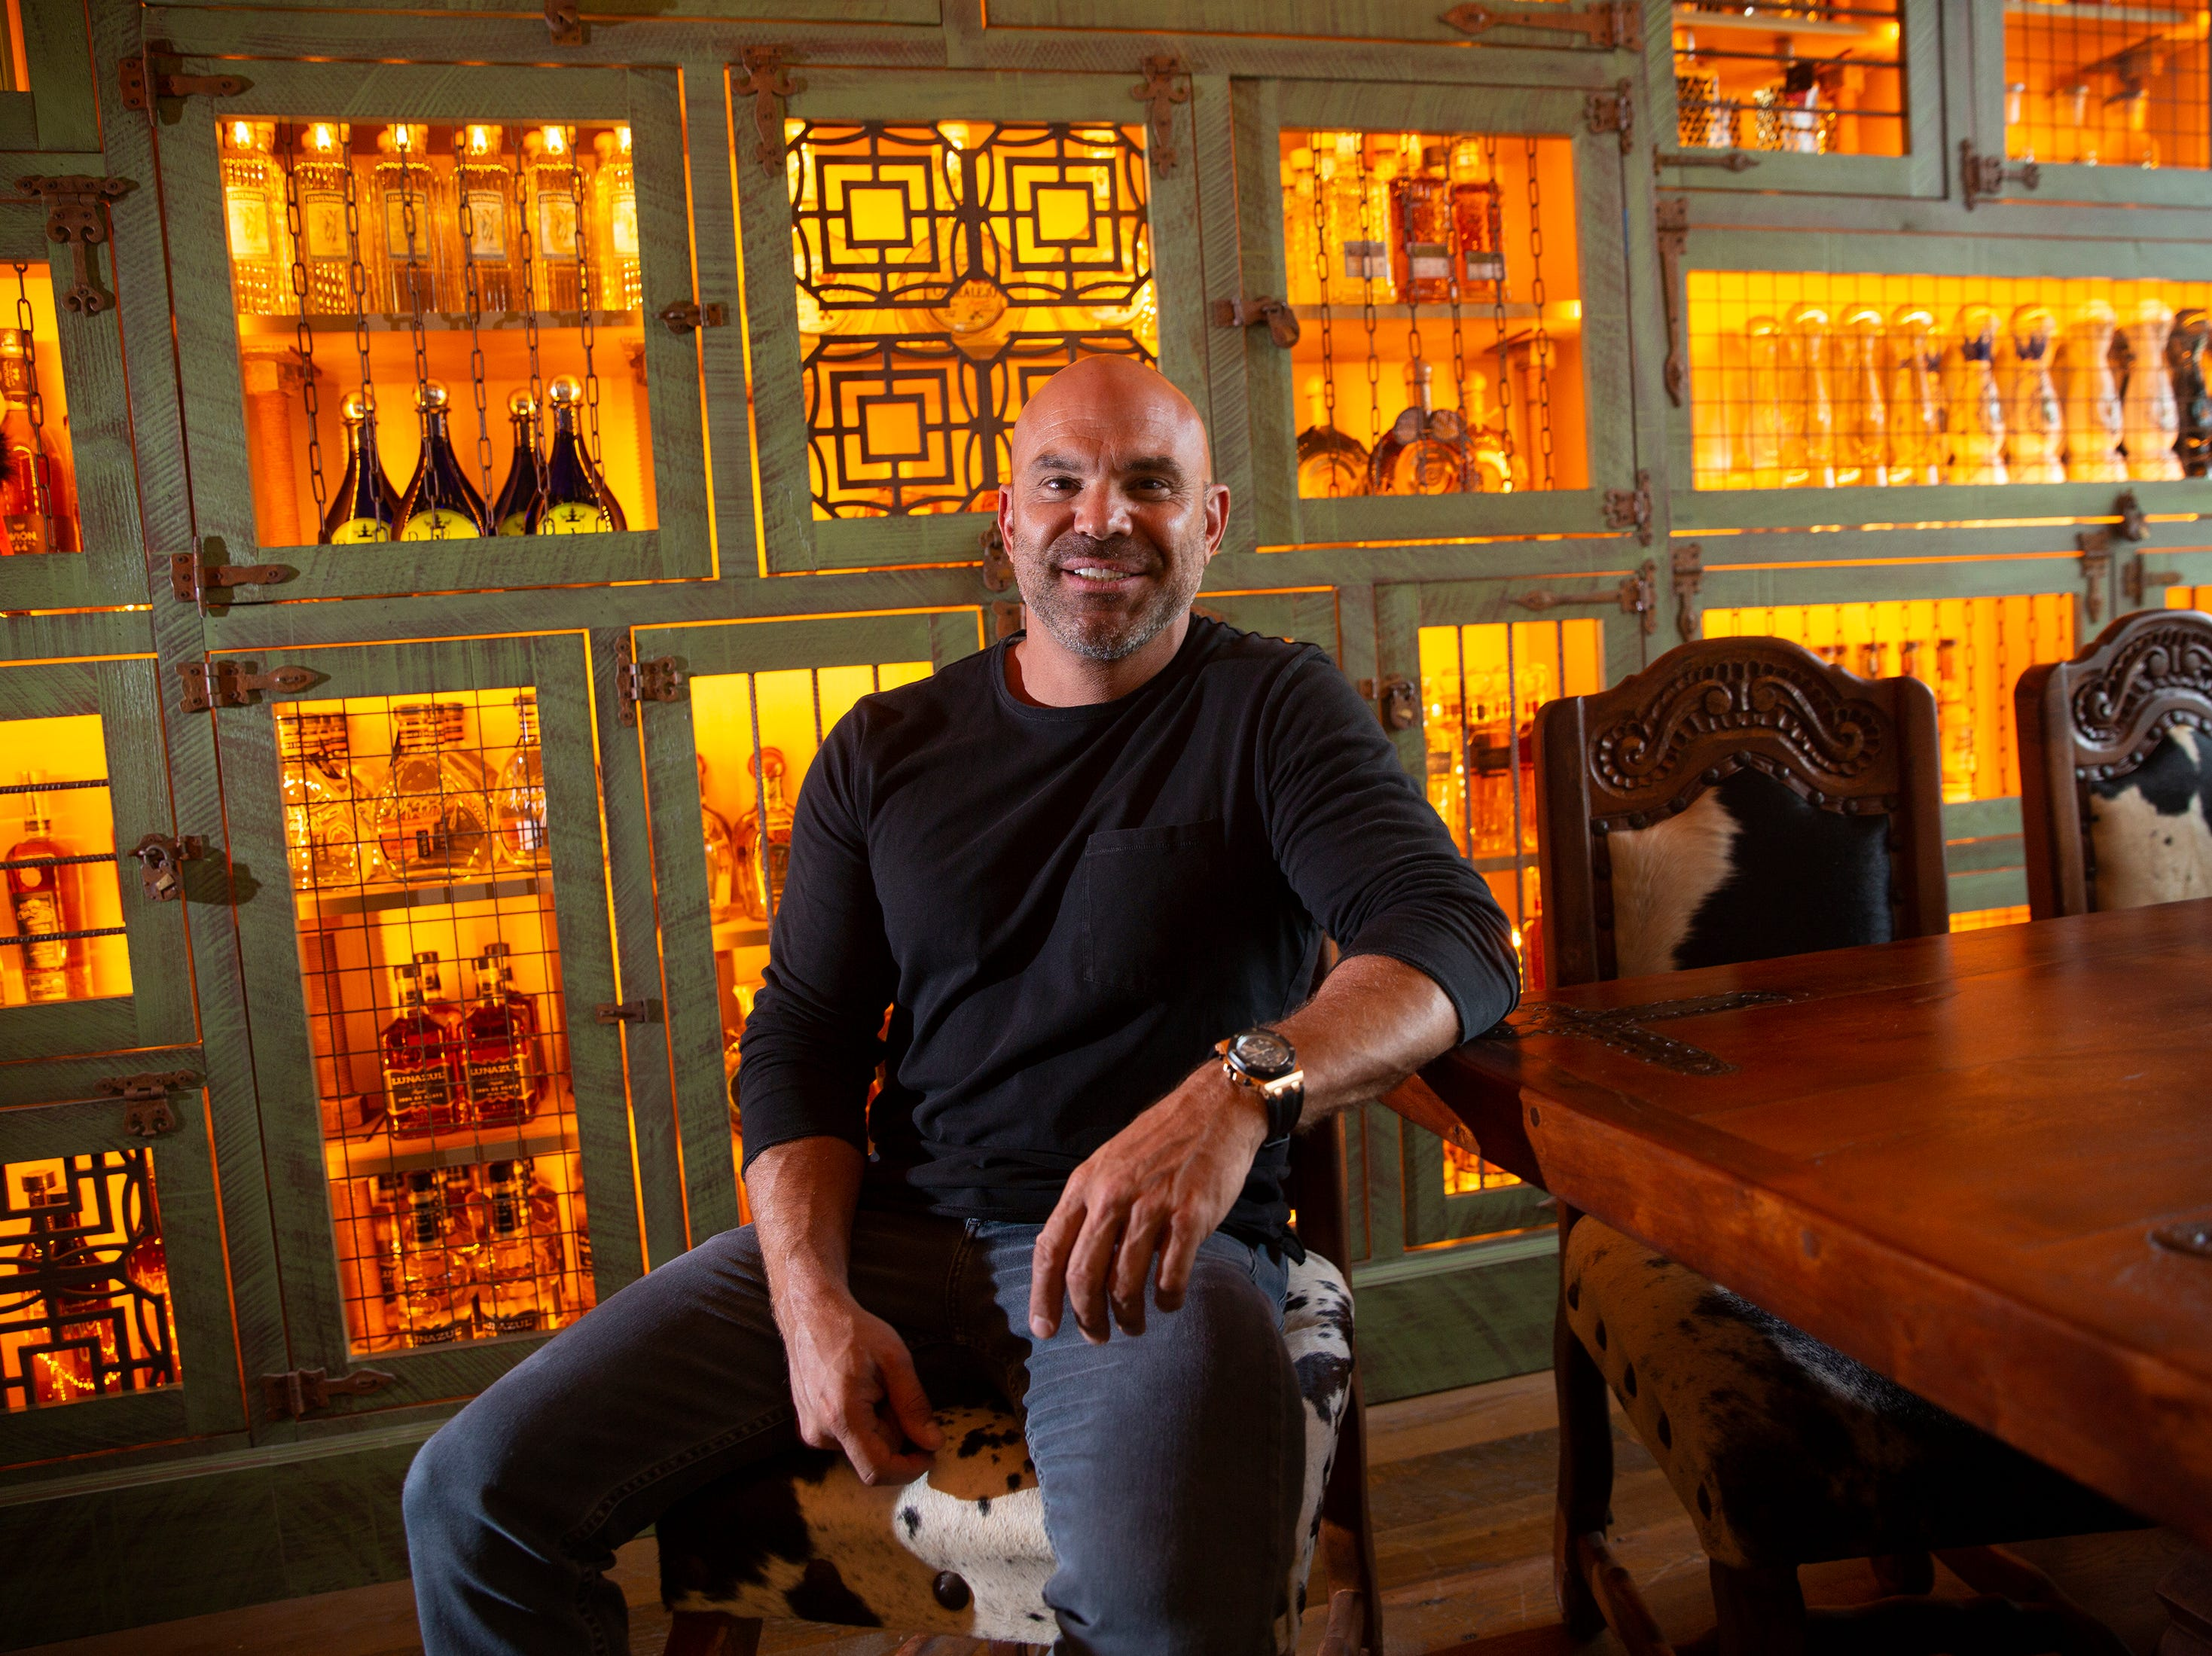 Rocco Mangel, owner of RoccoÕs Tacos & Tequila Bar poses for a portrait, Tuesday, Feb. 26, 2019, at his new resturant in Naples.